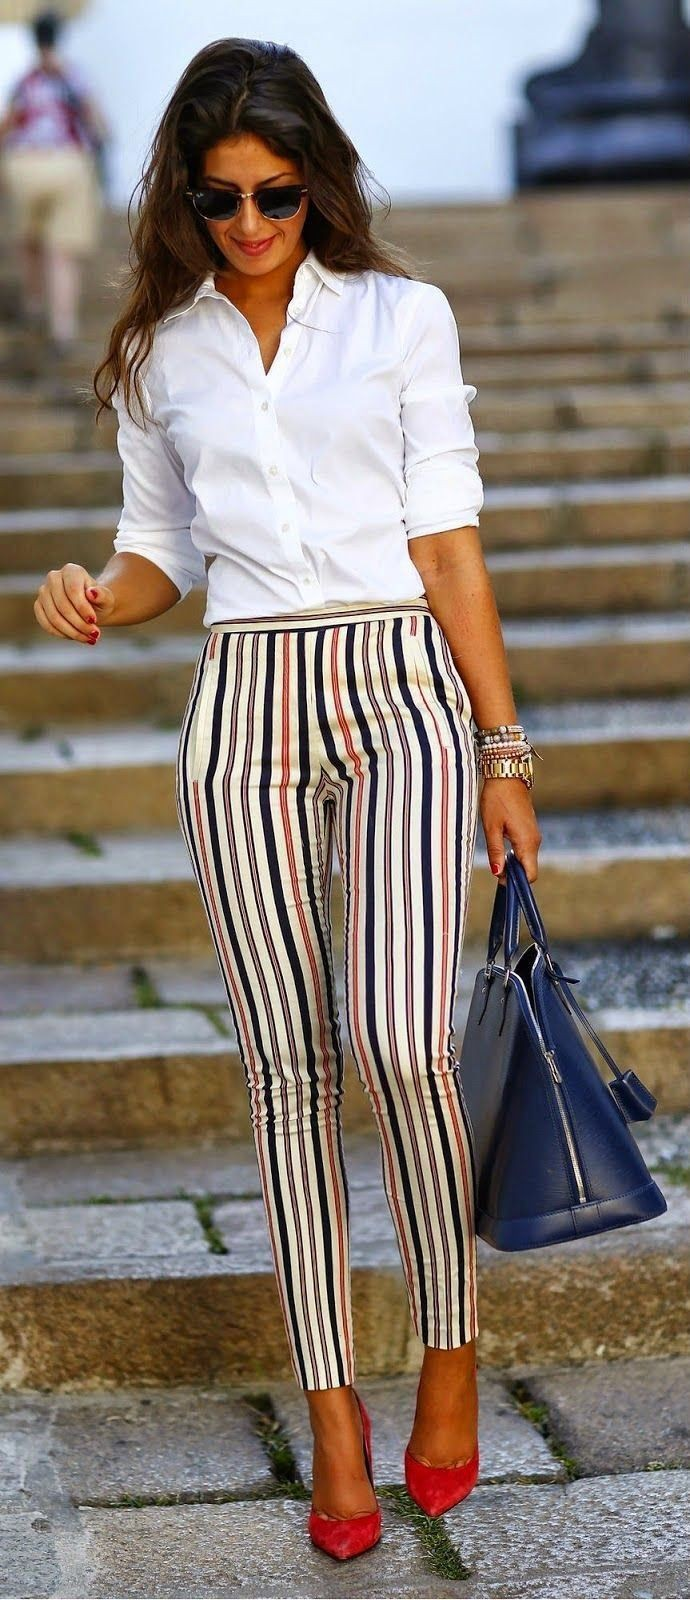 Striped pants work outfit, Dress shirt